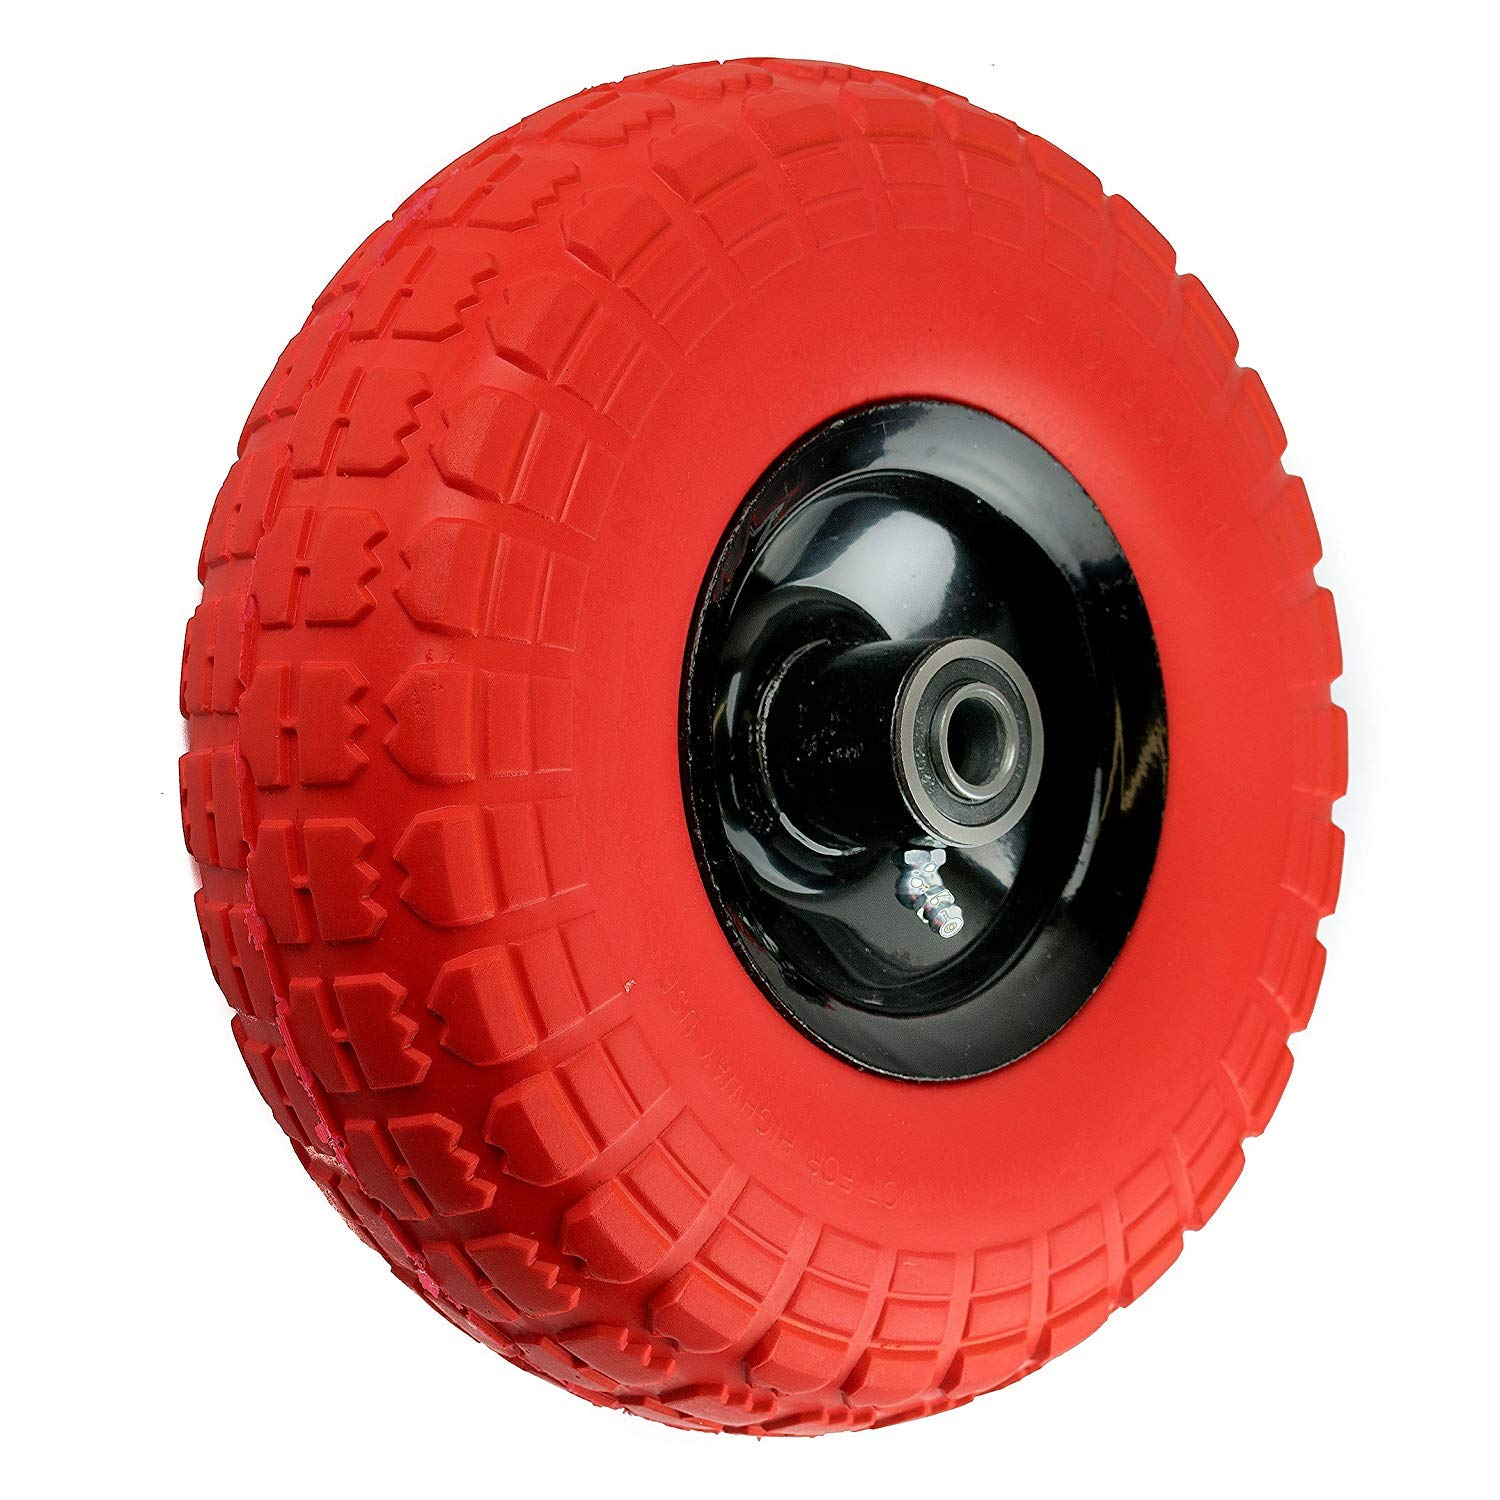 Troy Safety NK WFFOR10 Heavy Duty Solid Rubber Flat Free Tubeless Hand Truck/Utility Tire Wheel, 4.10/3.50-4'' Tire, 2-1/4'' Offset Hub, 5/8'' Bearing